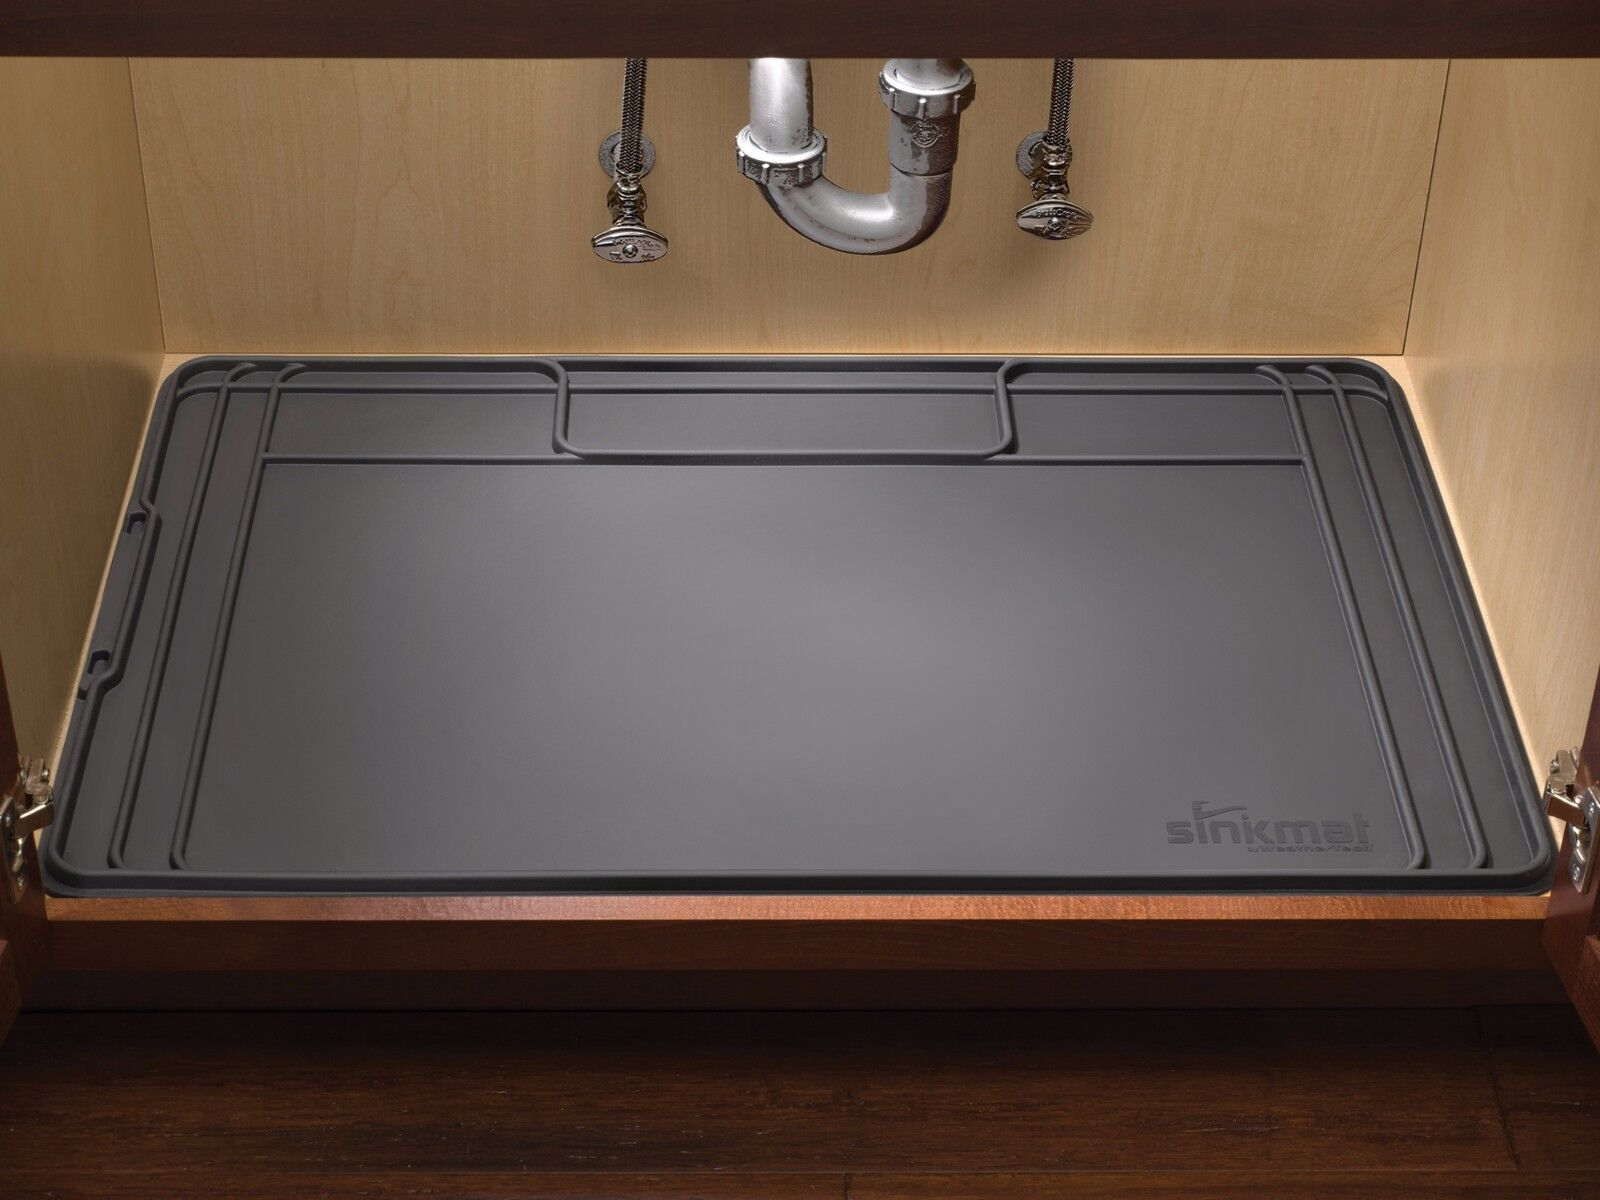 ... Mildew, And Other Damage To Your Under Sink Storage Area. The American  Made WeatherTech SinkMat Is The Best Way To Protect Your Cabinet Interiors  ...